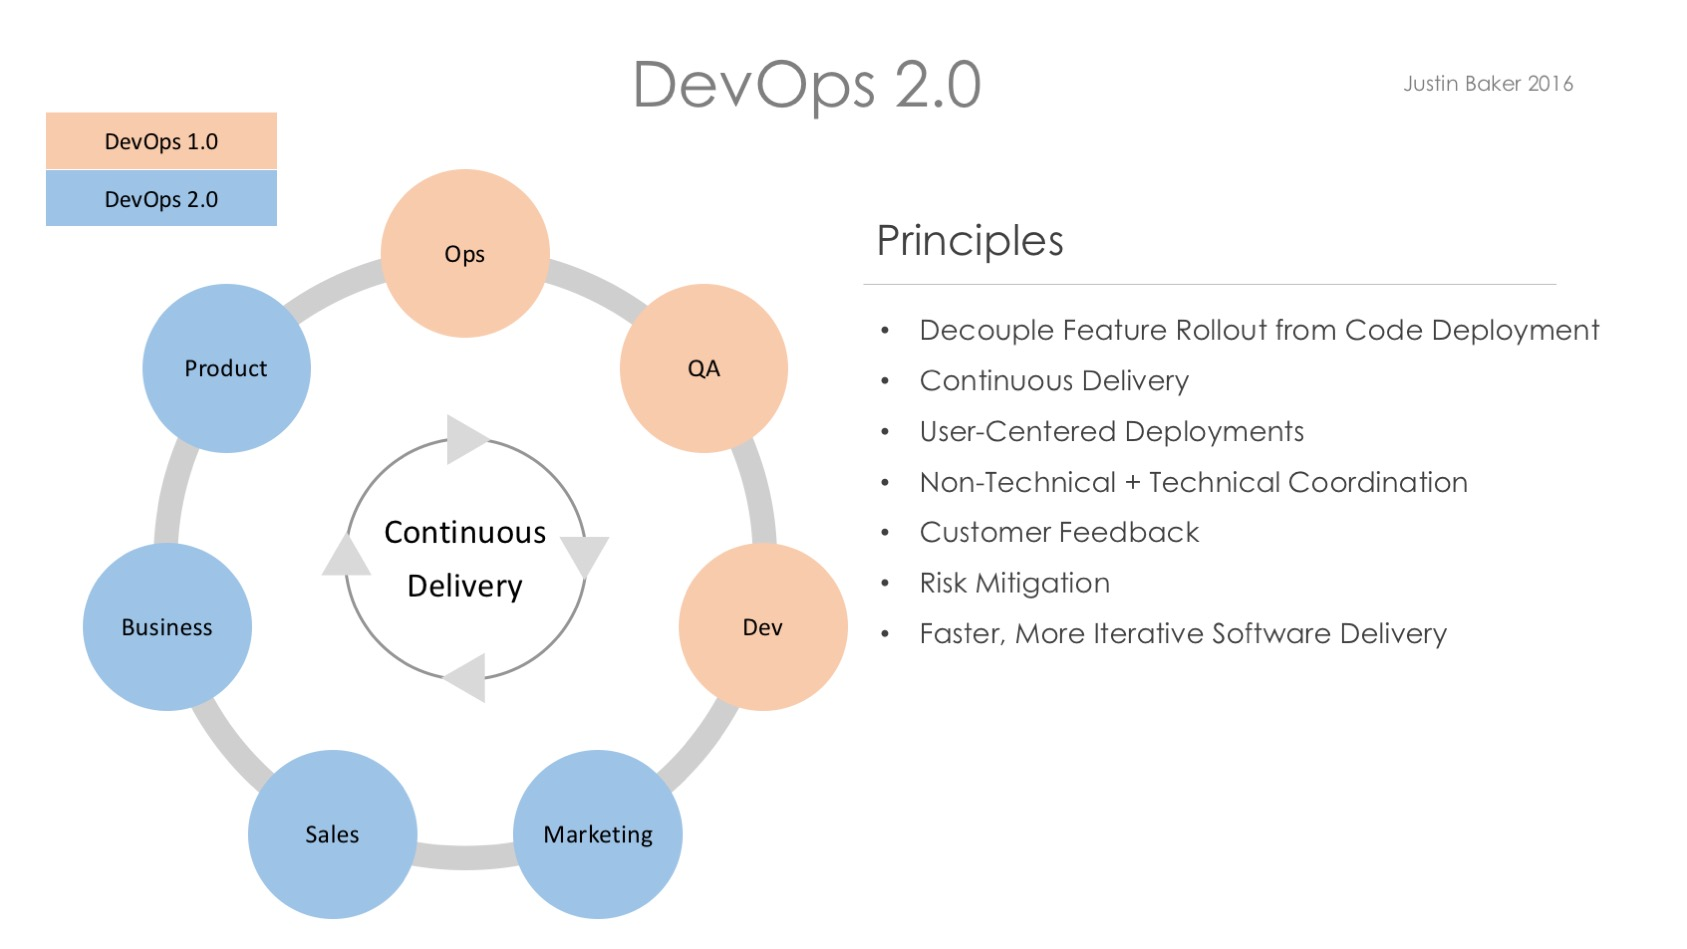 DevOps 2.0 Principles Decouple Feature Rollout from Code Deployment LaunchDarkly Feature Flags Feature Toggles and Risk Mitigation